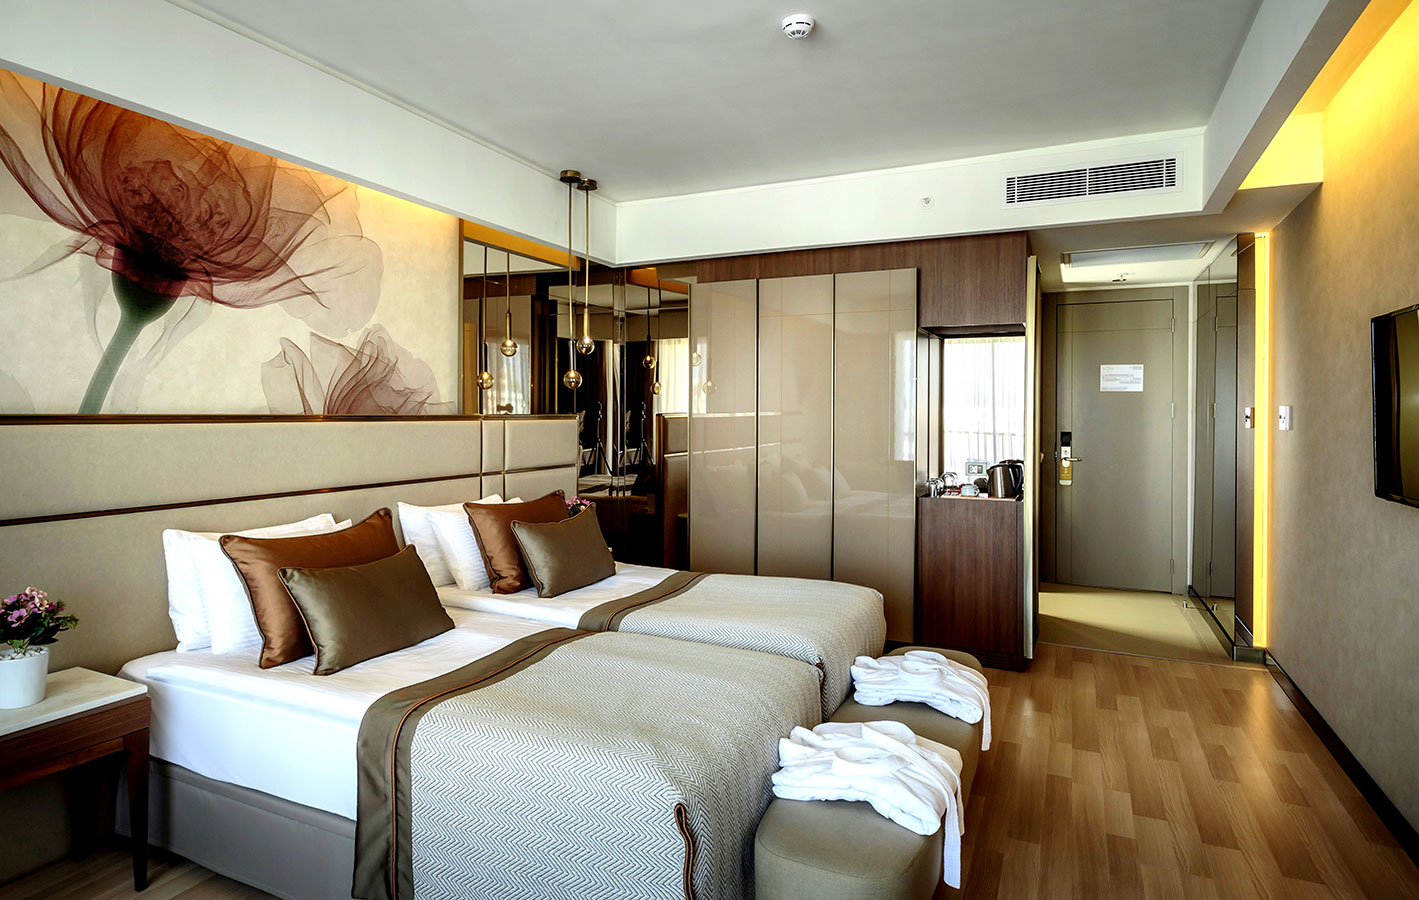 Rooms - Riolavitas Resort & Spa Hotel